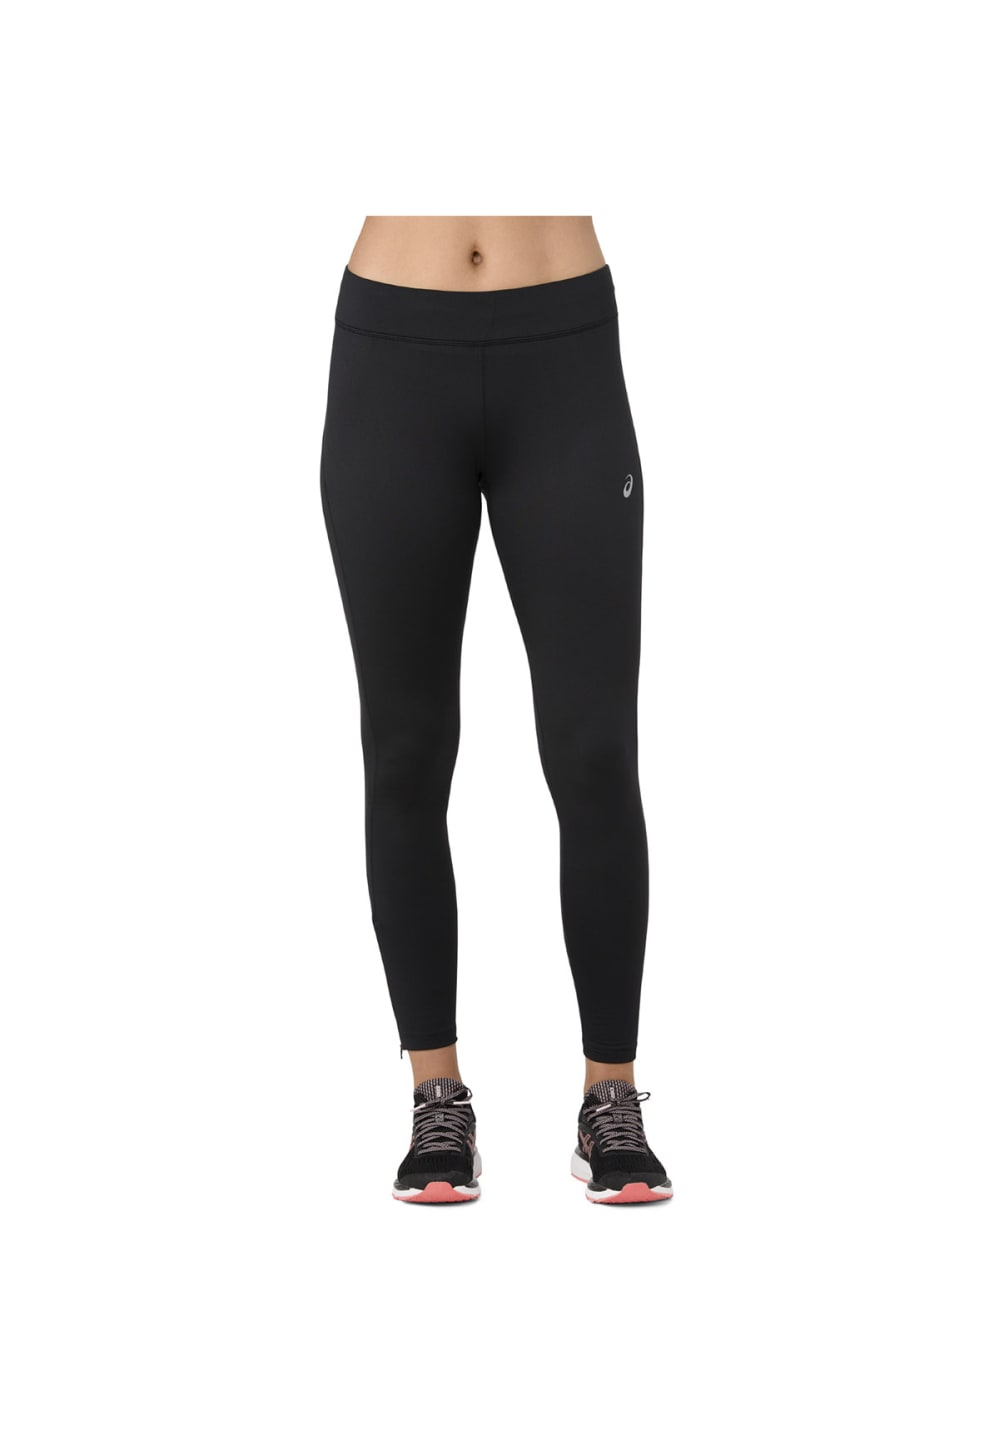 ASICS Silver Winter Tight Running trousers for Women Black